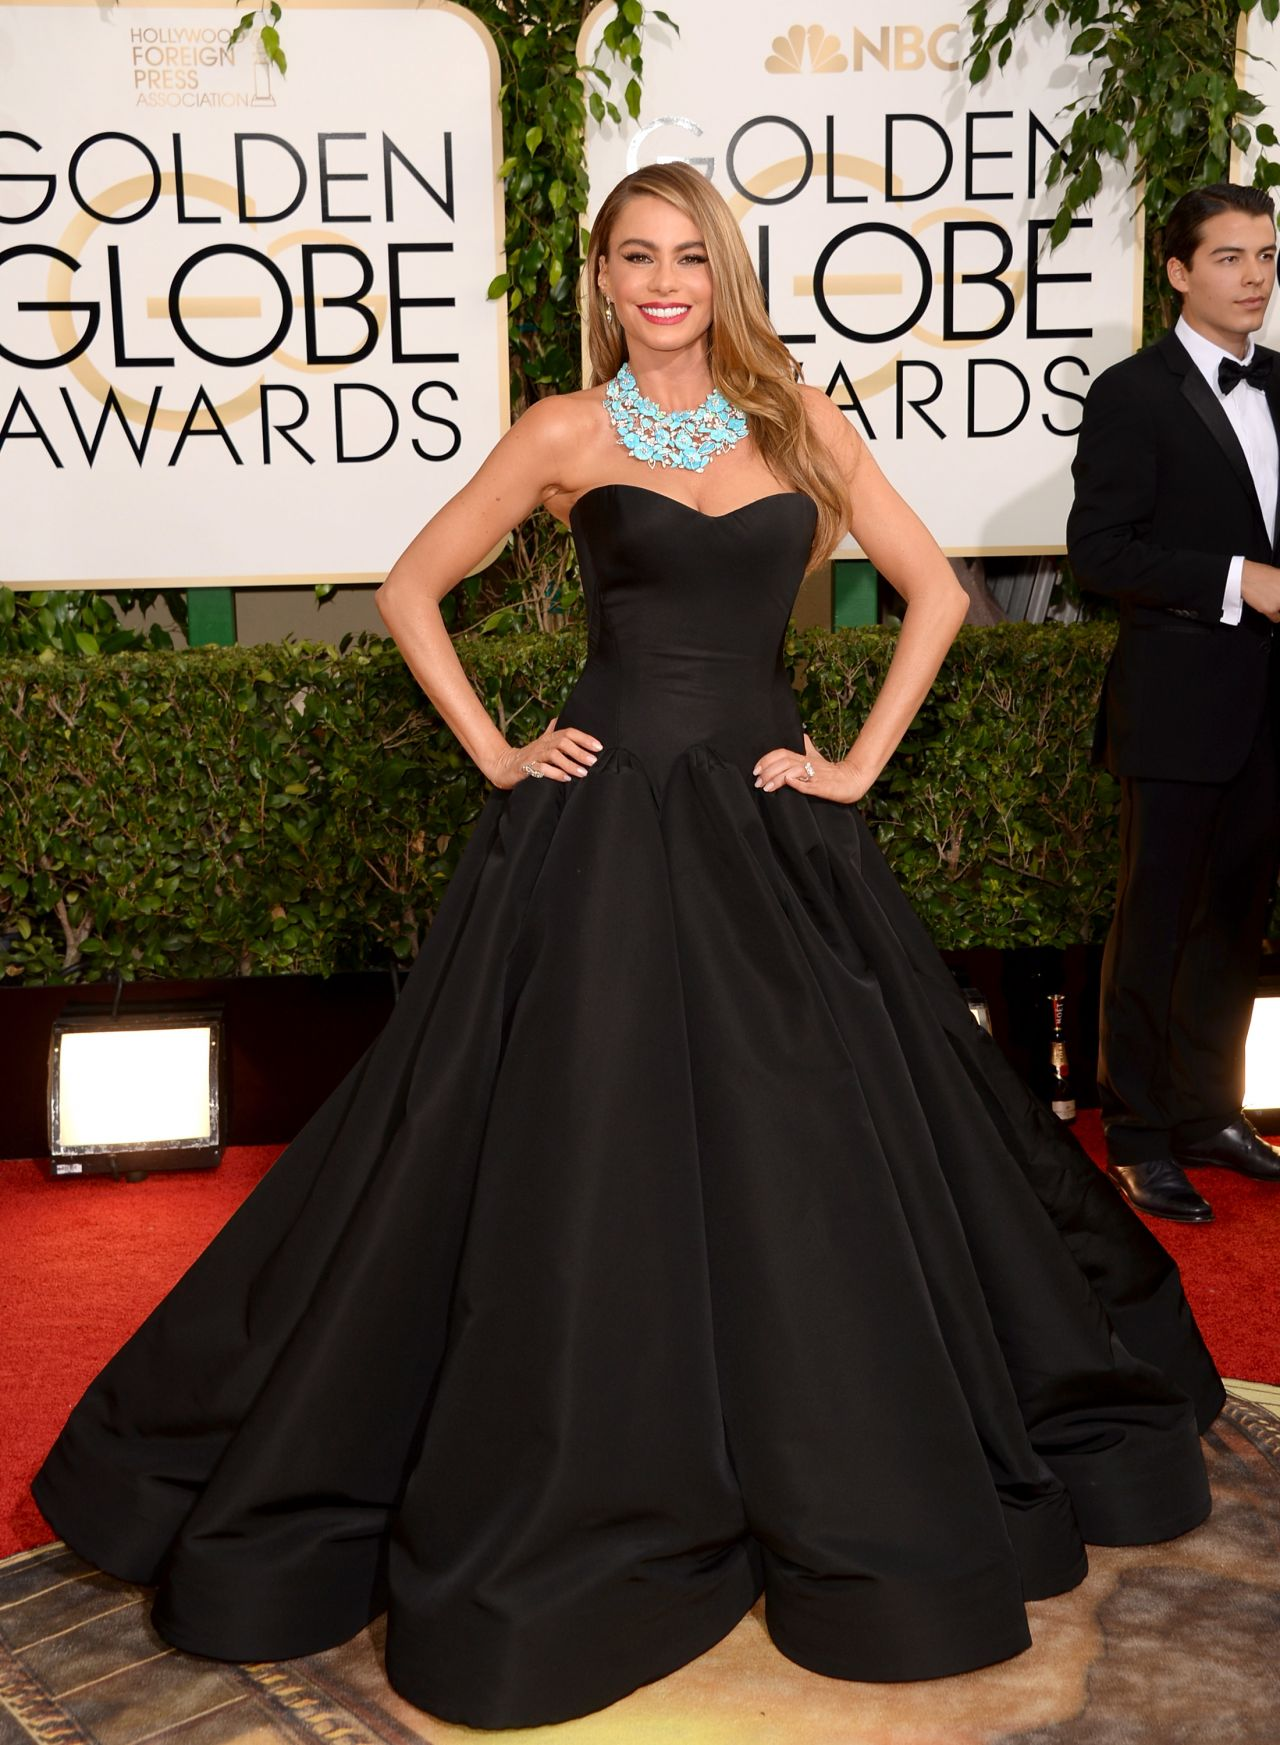 Sofia Vergara On Red Carpet 2014 Golden Globe Awards